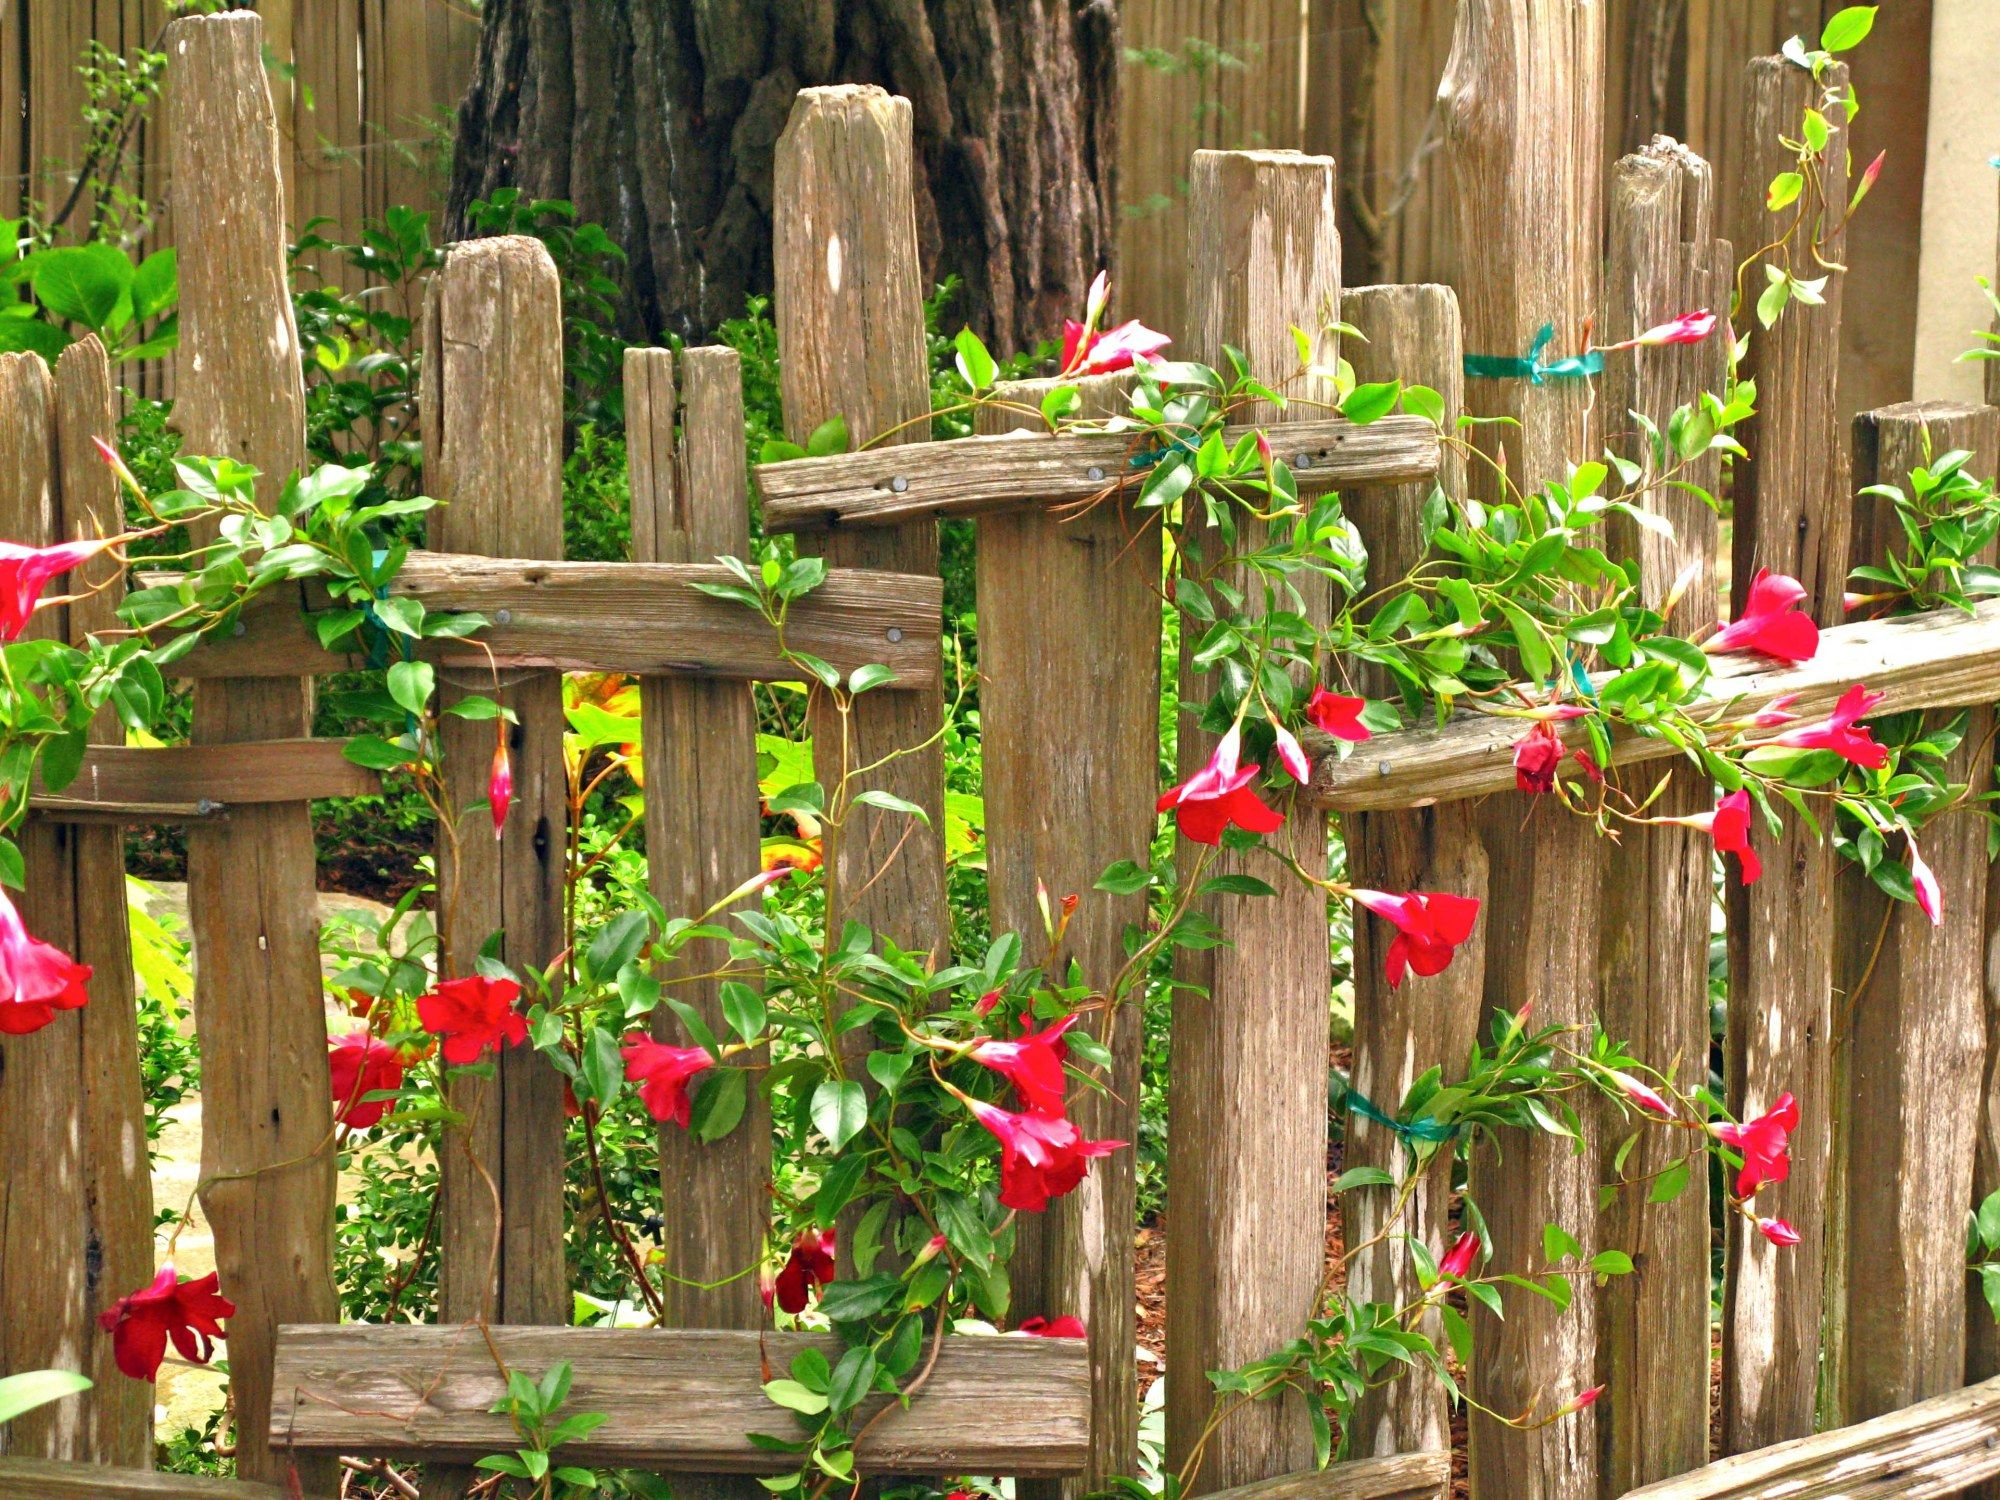 rustic cottage fence gardening inside and out ❀